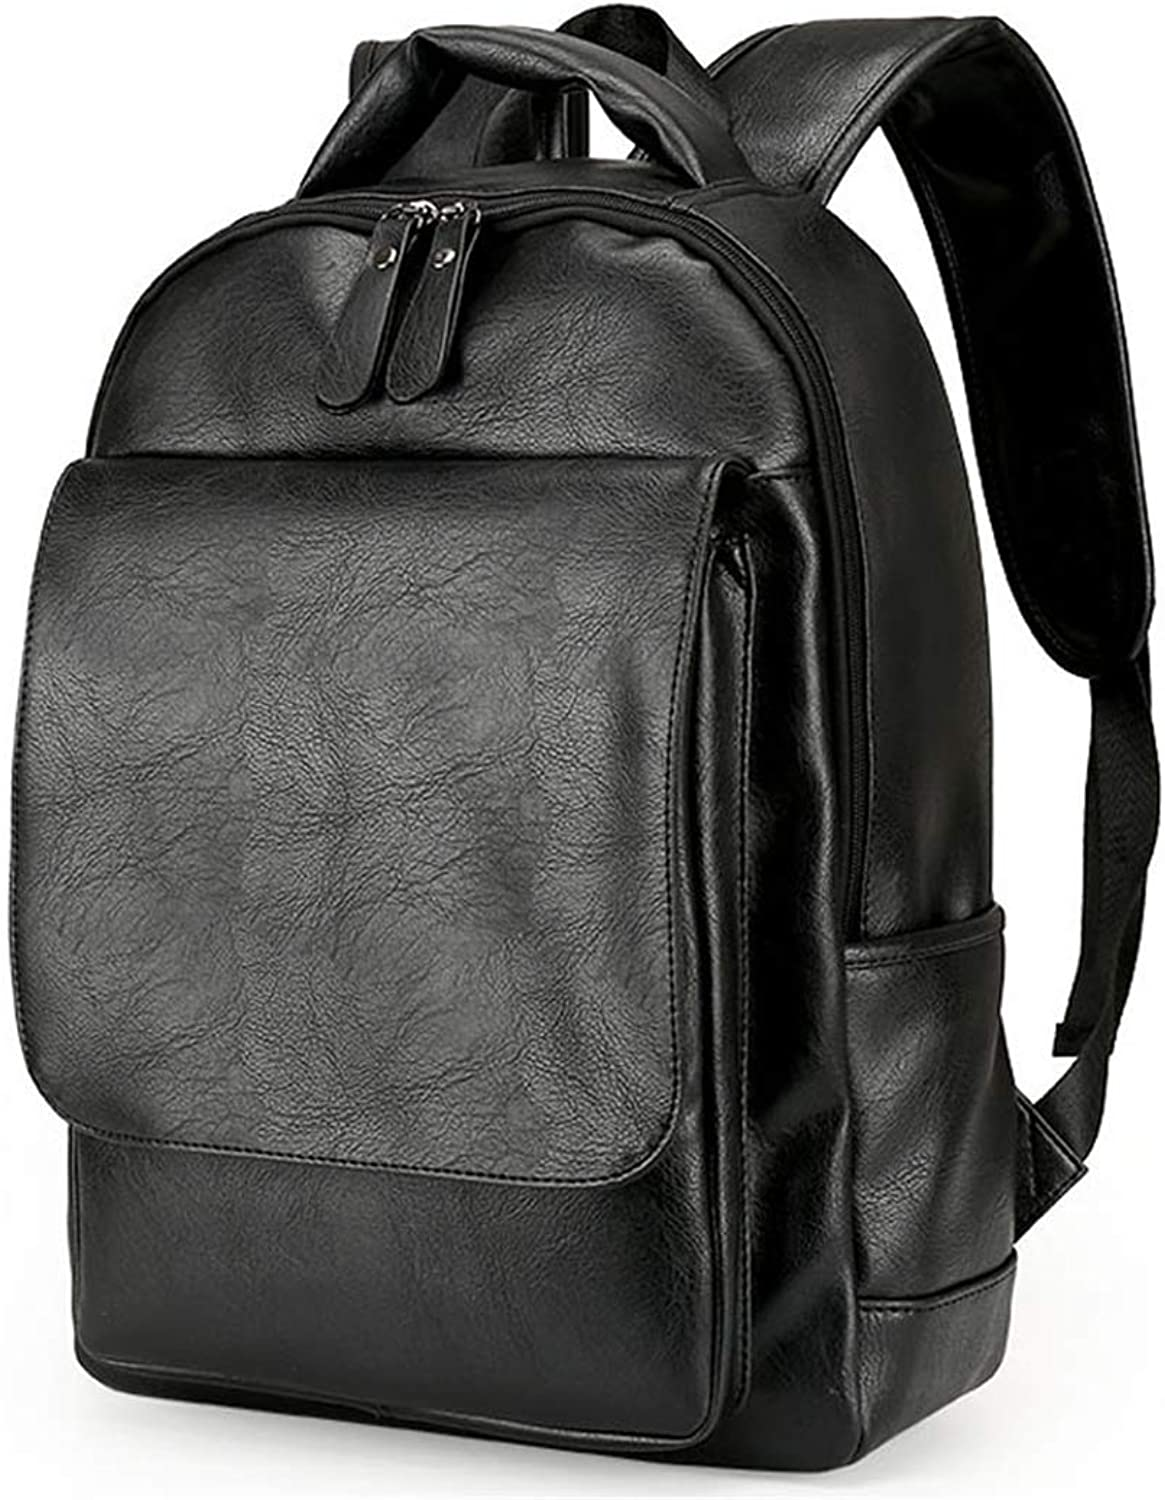 Leather Men Backpacks Rucksack Schoolbags Black Business Laptop Bags